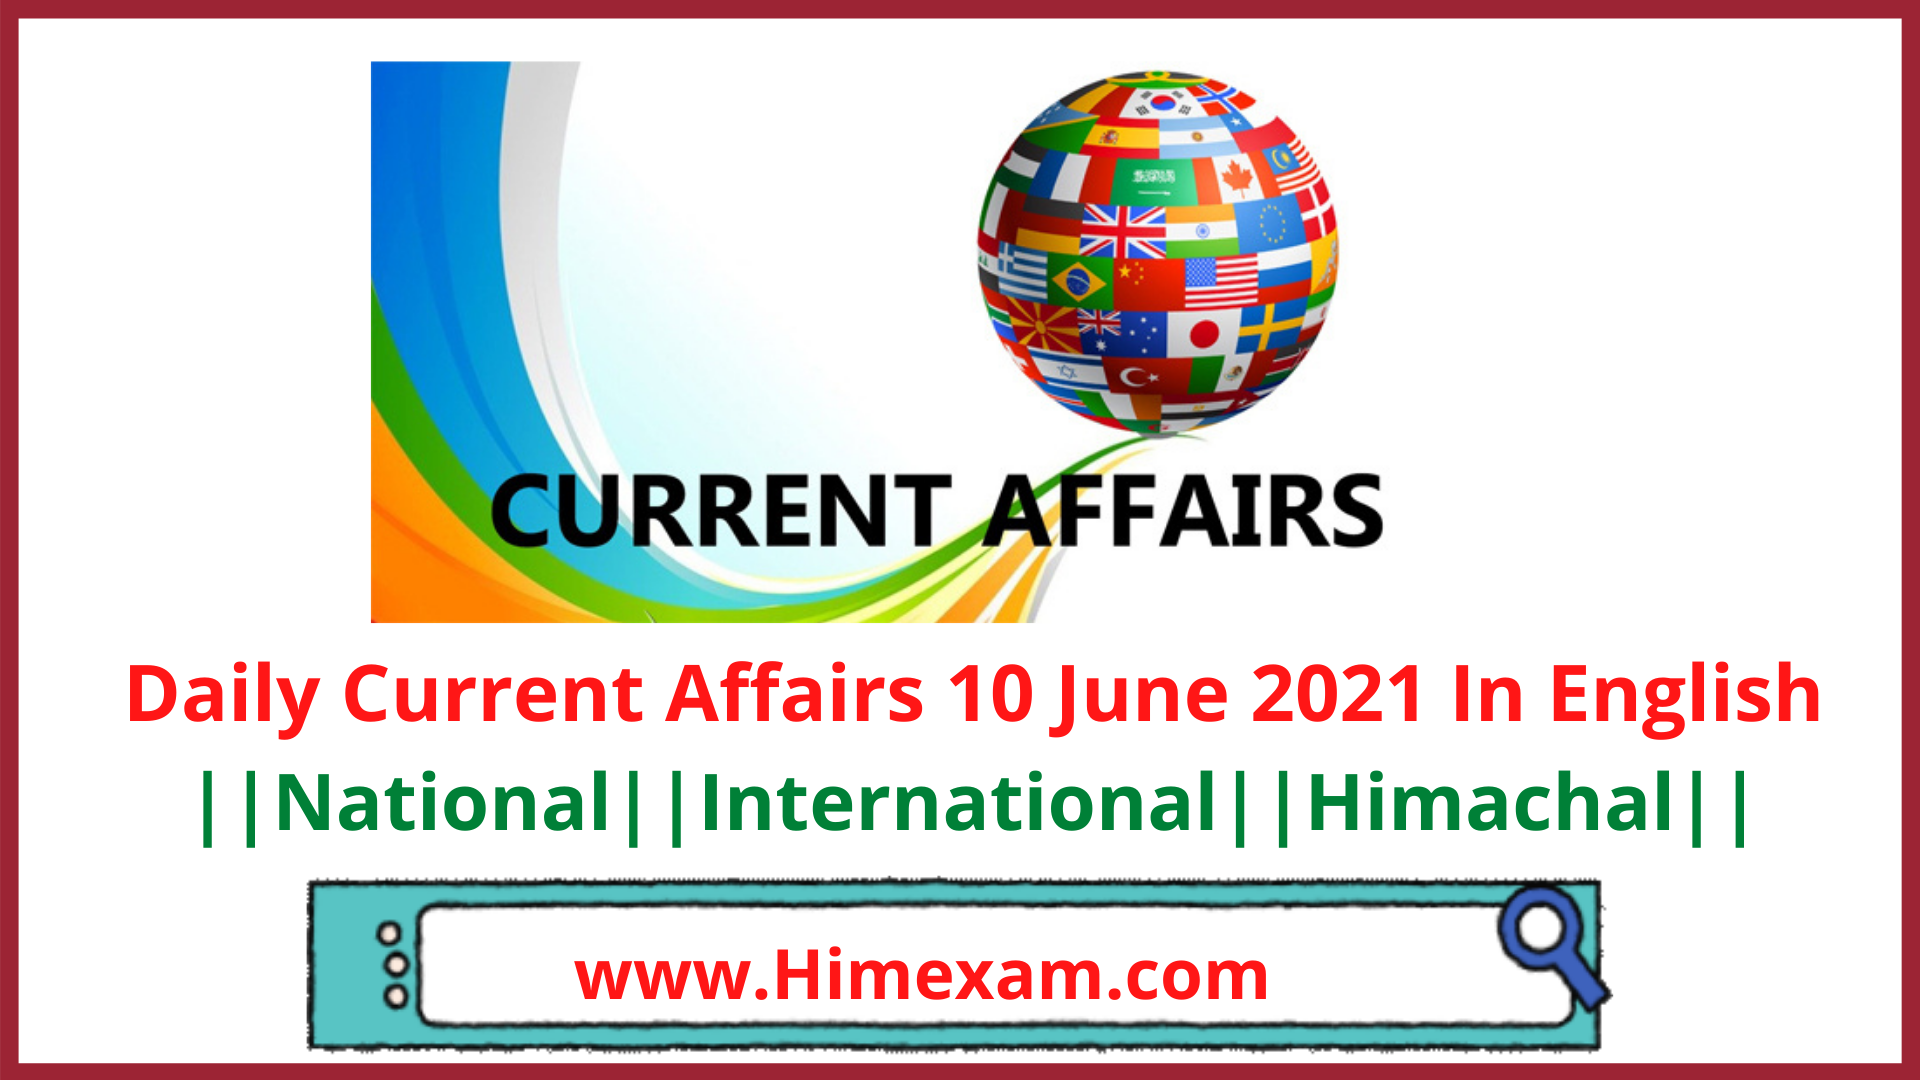 Daily Current Affairs 10 June 2021 In English